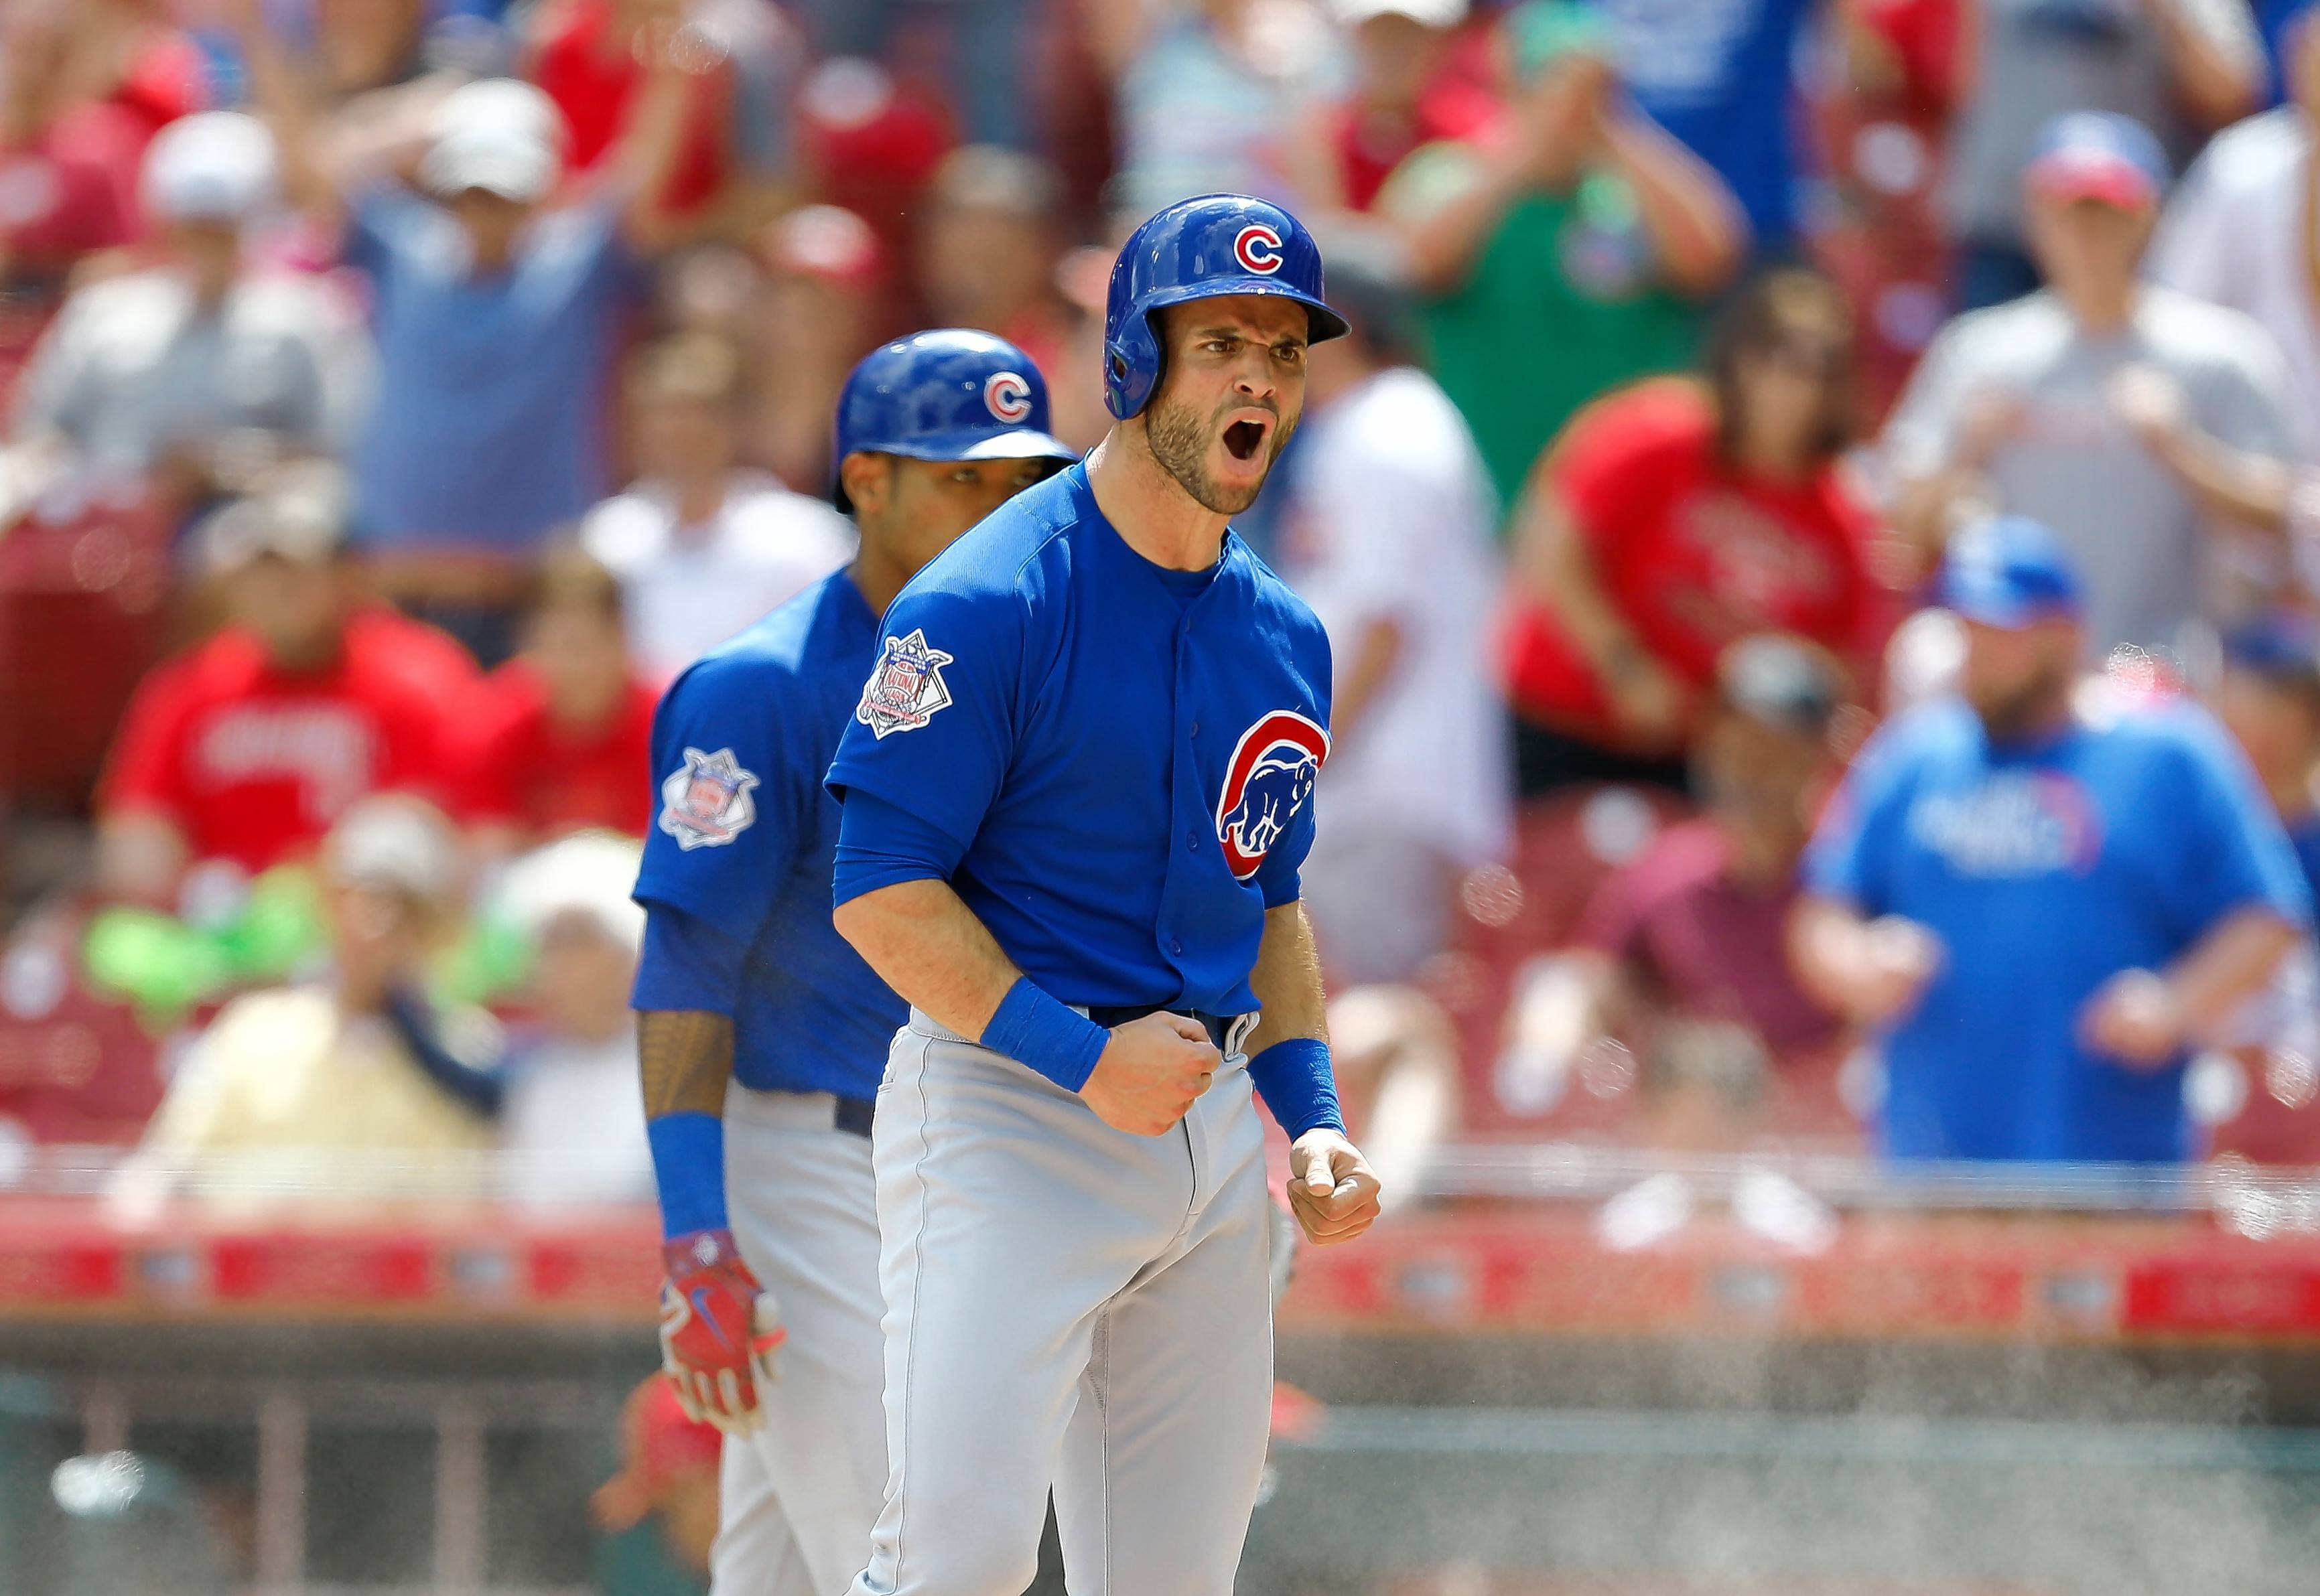 Chicago Cubs' Tommy La Stella, front, reacts to scoring on a double by Anthony Rizzo during the eighth inning in the first baseball game of a doubleheader against the Cincinnati Reds, Saturday, May 19, 2018, in Cincinnati. The Reds won 5-4 in 11 innings.